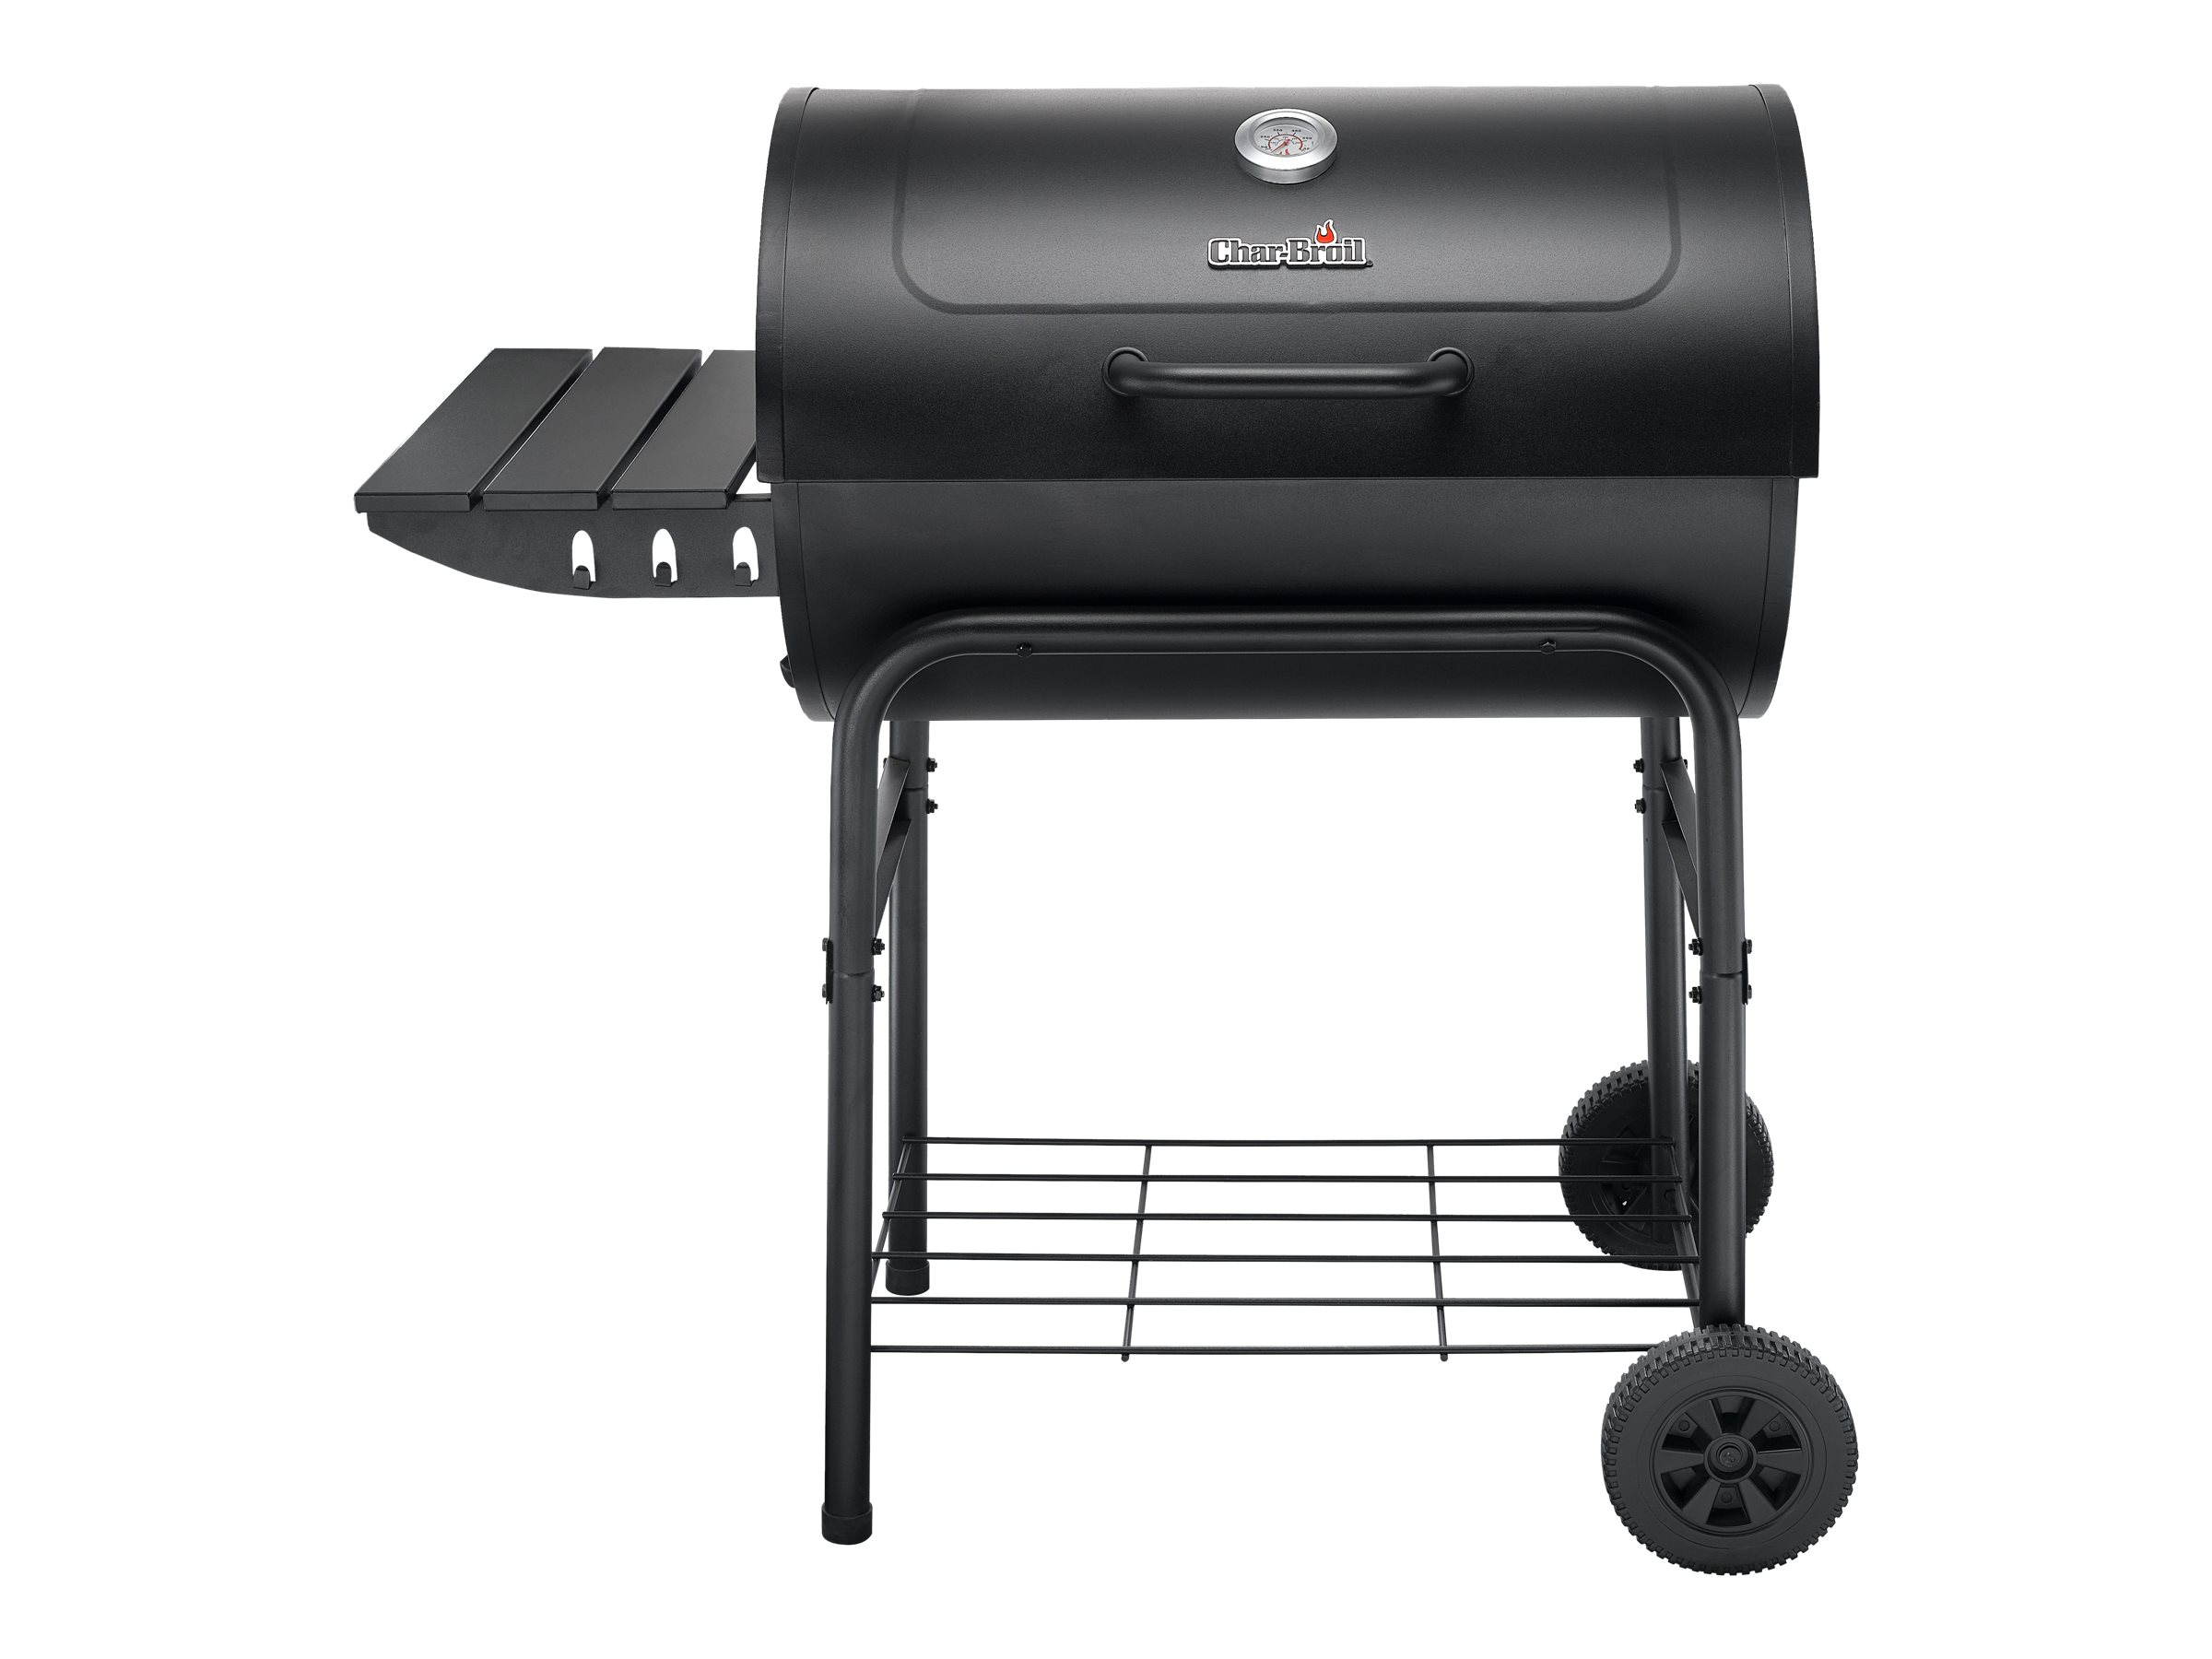 Image for Char-Broil American Gourmet 17302055 - Barbeque Grill - Black from Circuit City